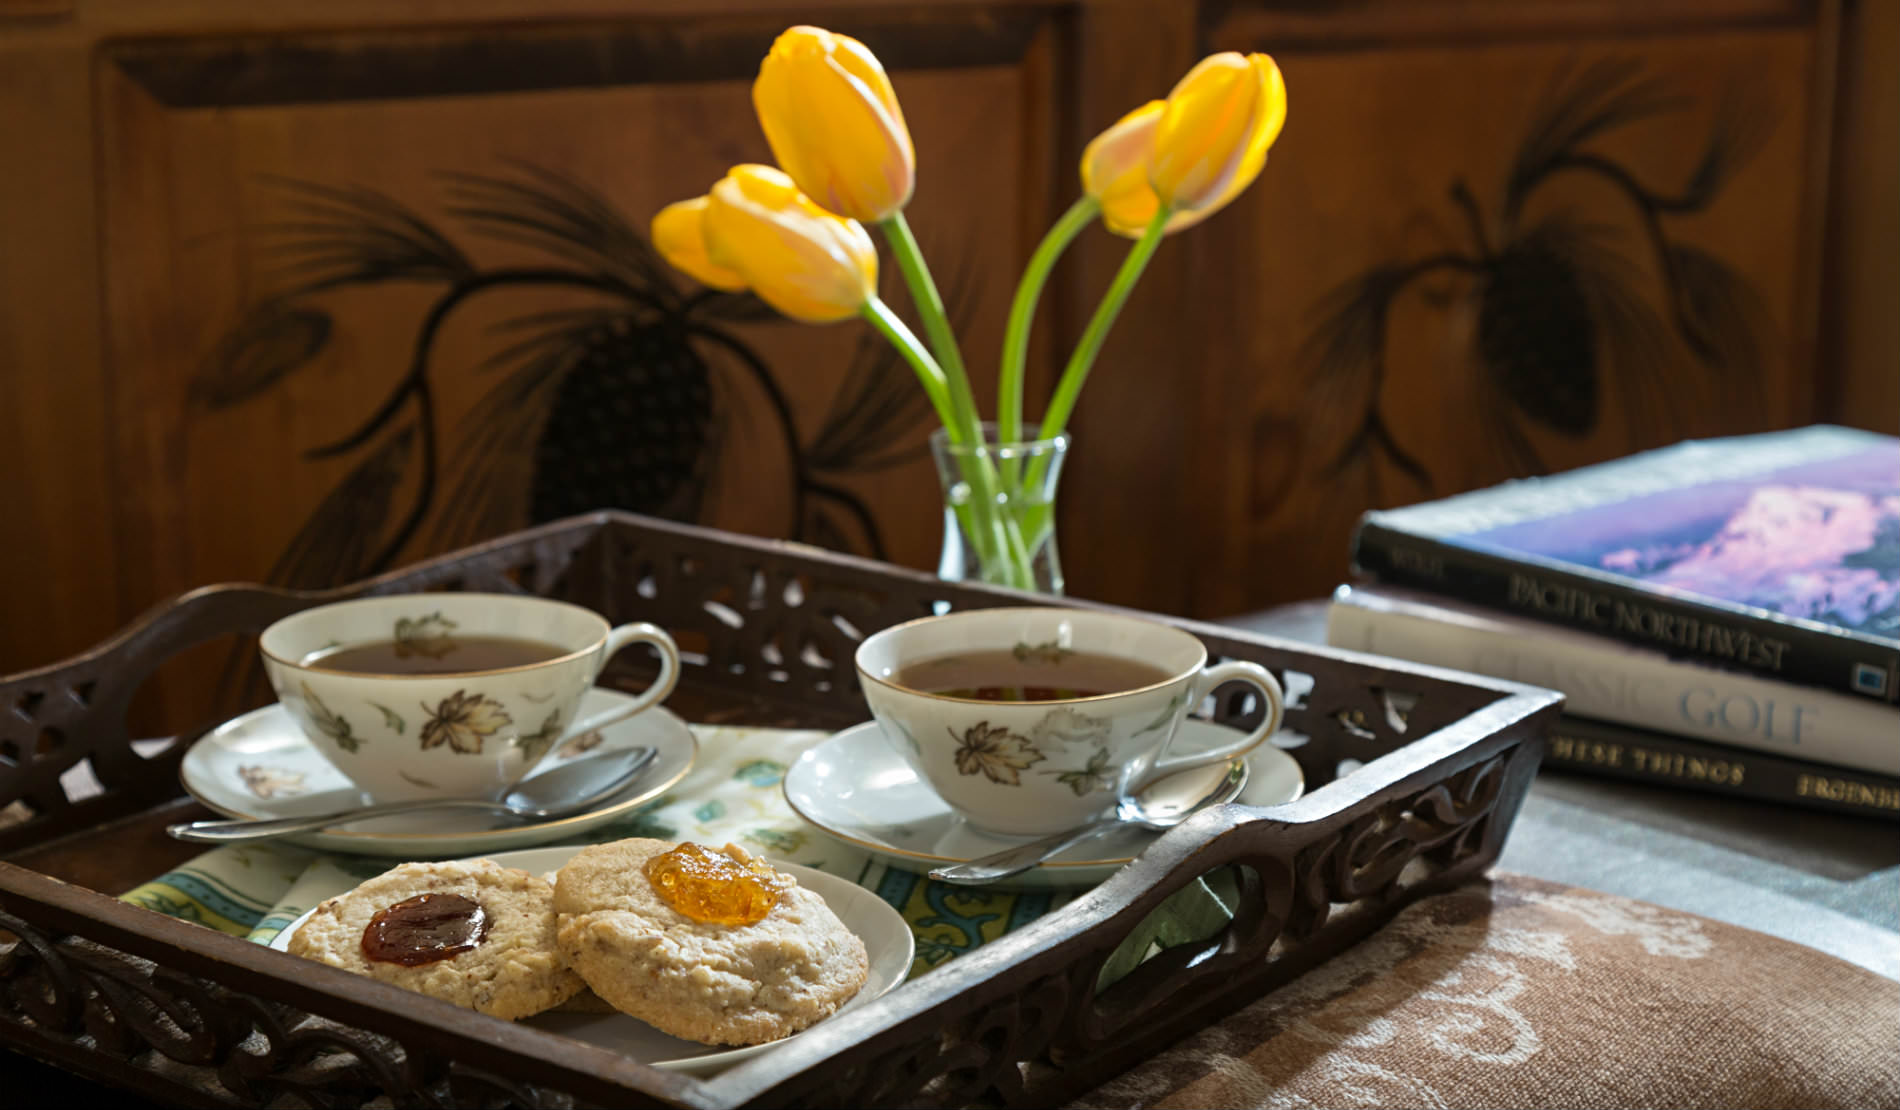 Cookies and tea on wooden server with yellow tulips and stack of books